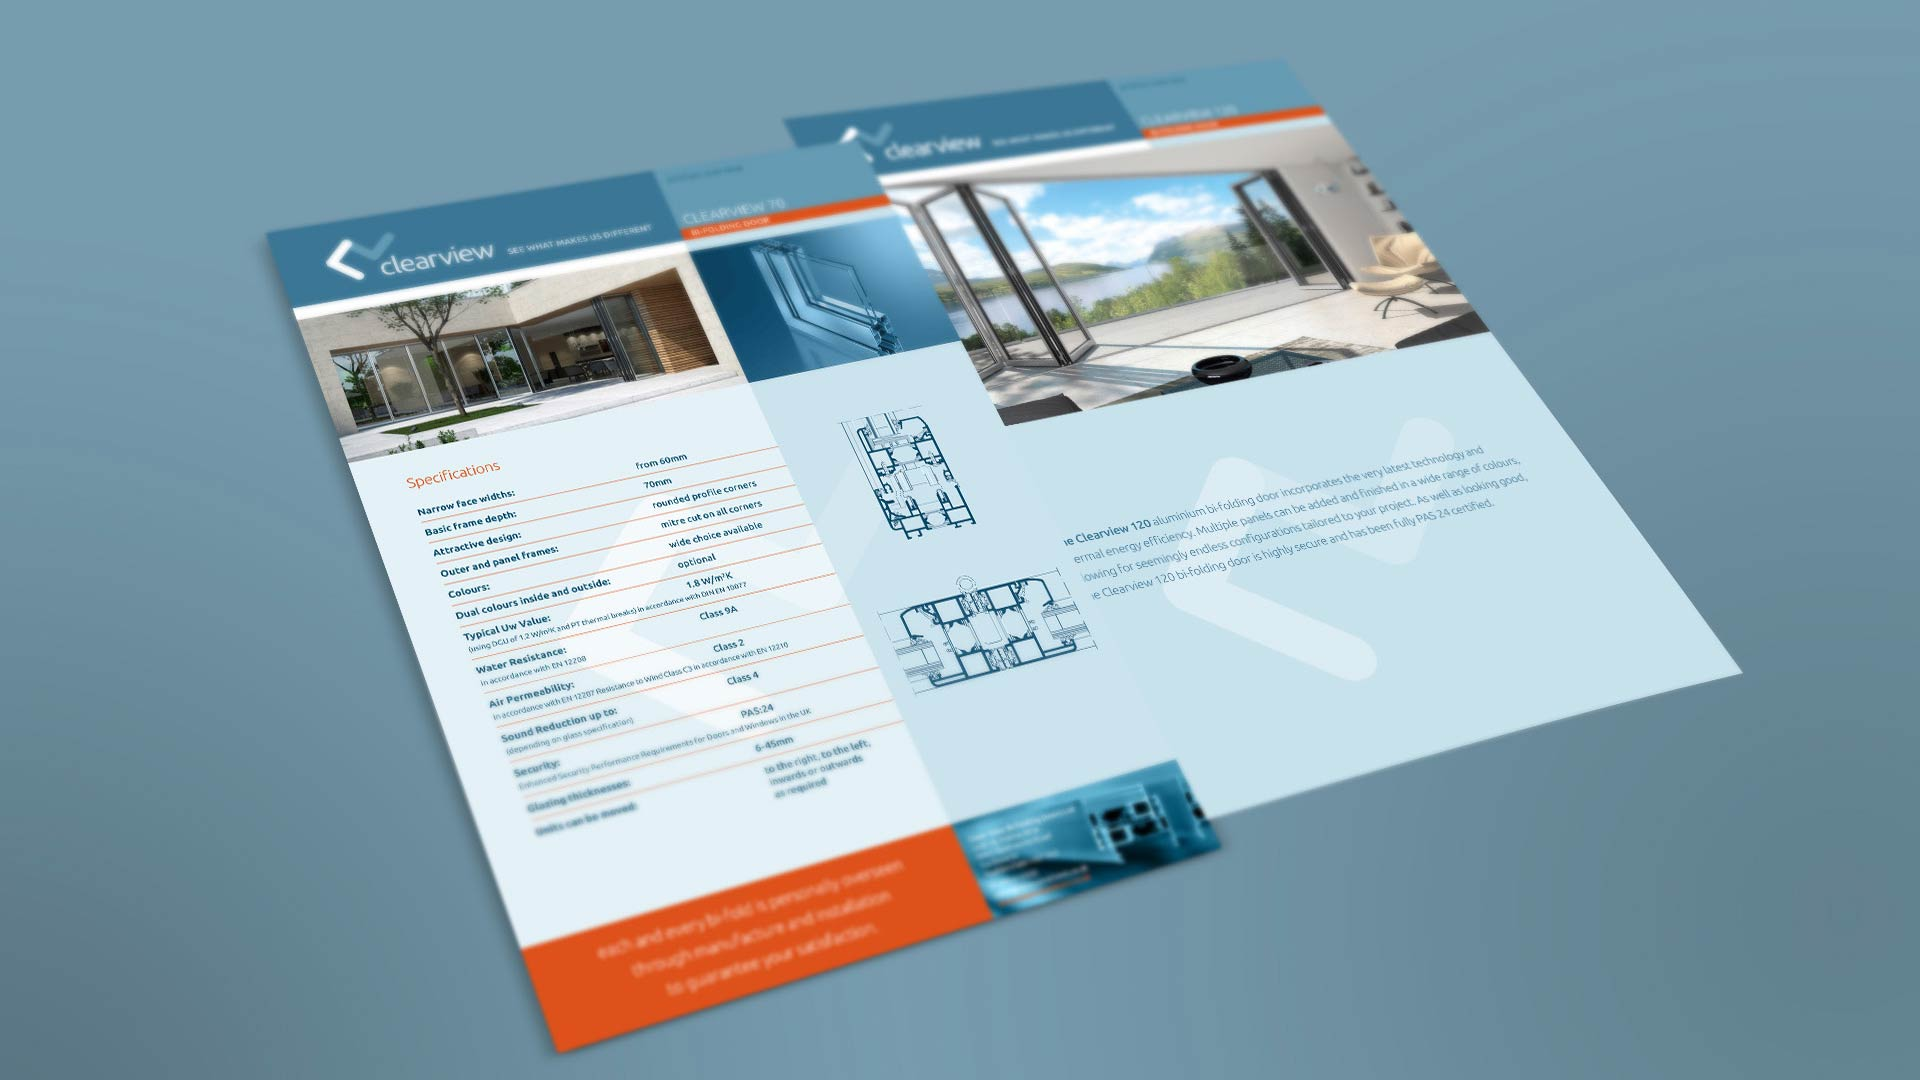 Clearview datasheets